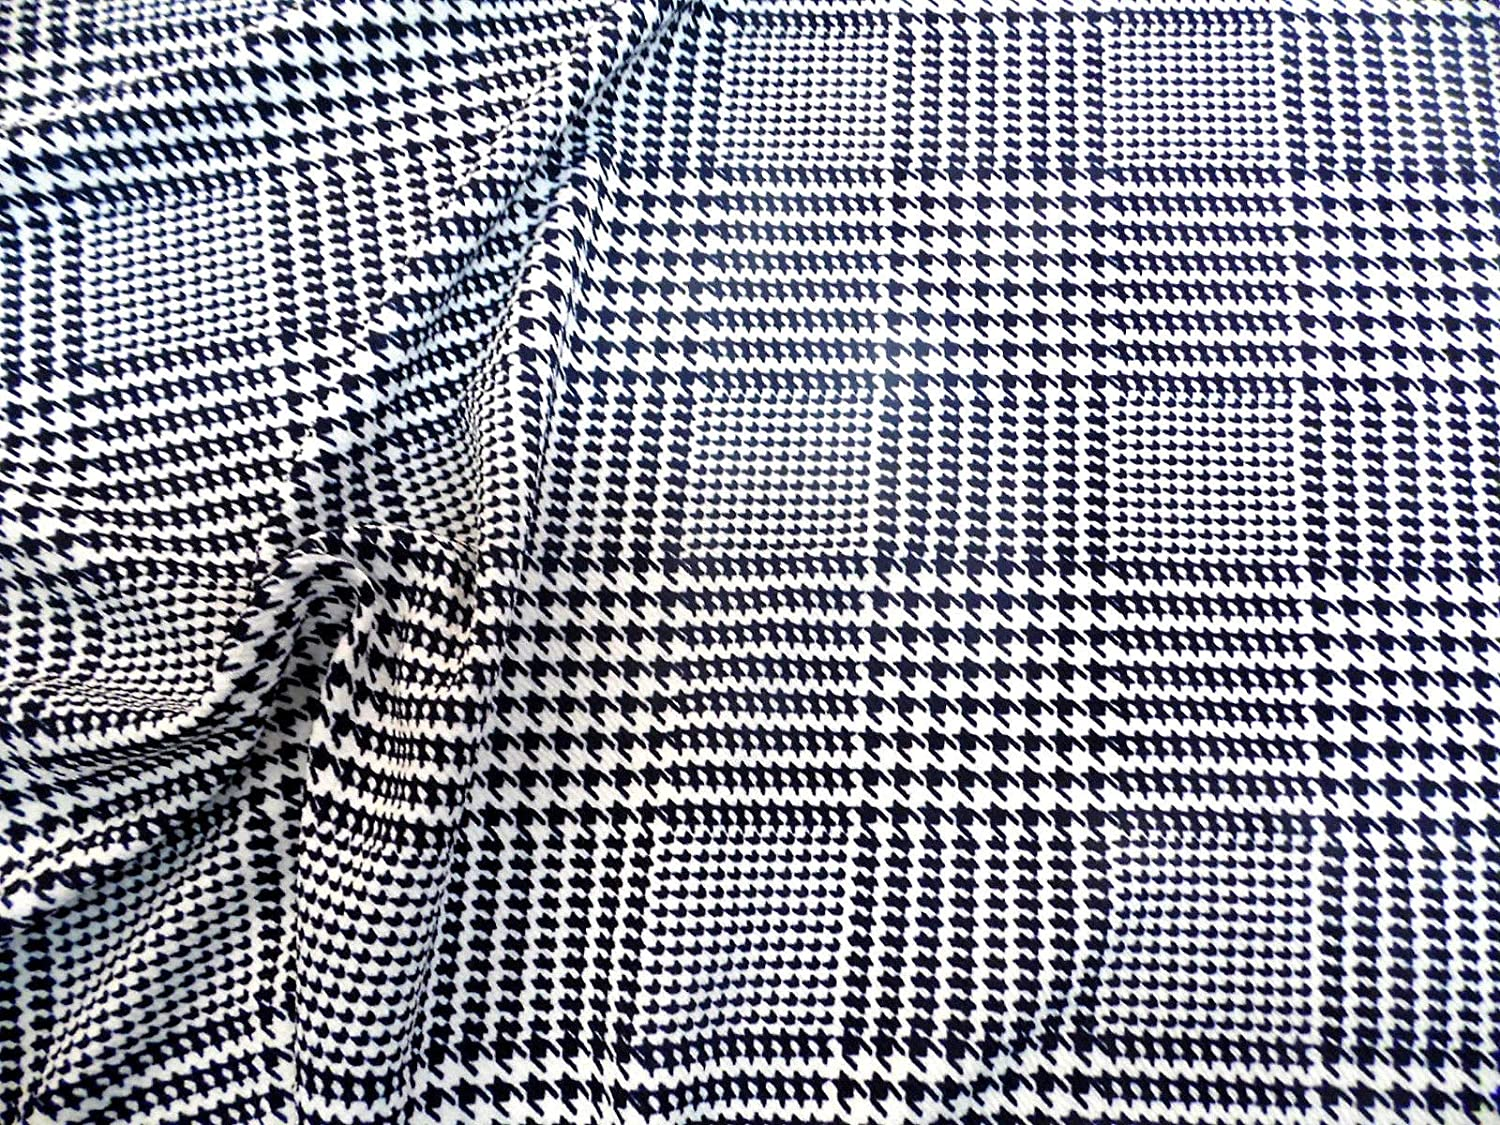 Fabric Printed Liverpool Textured 4 way Stretch Glen Plaid Houndstooth Navy J202